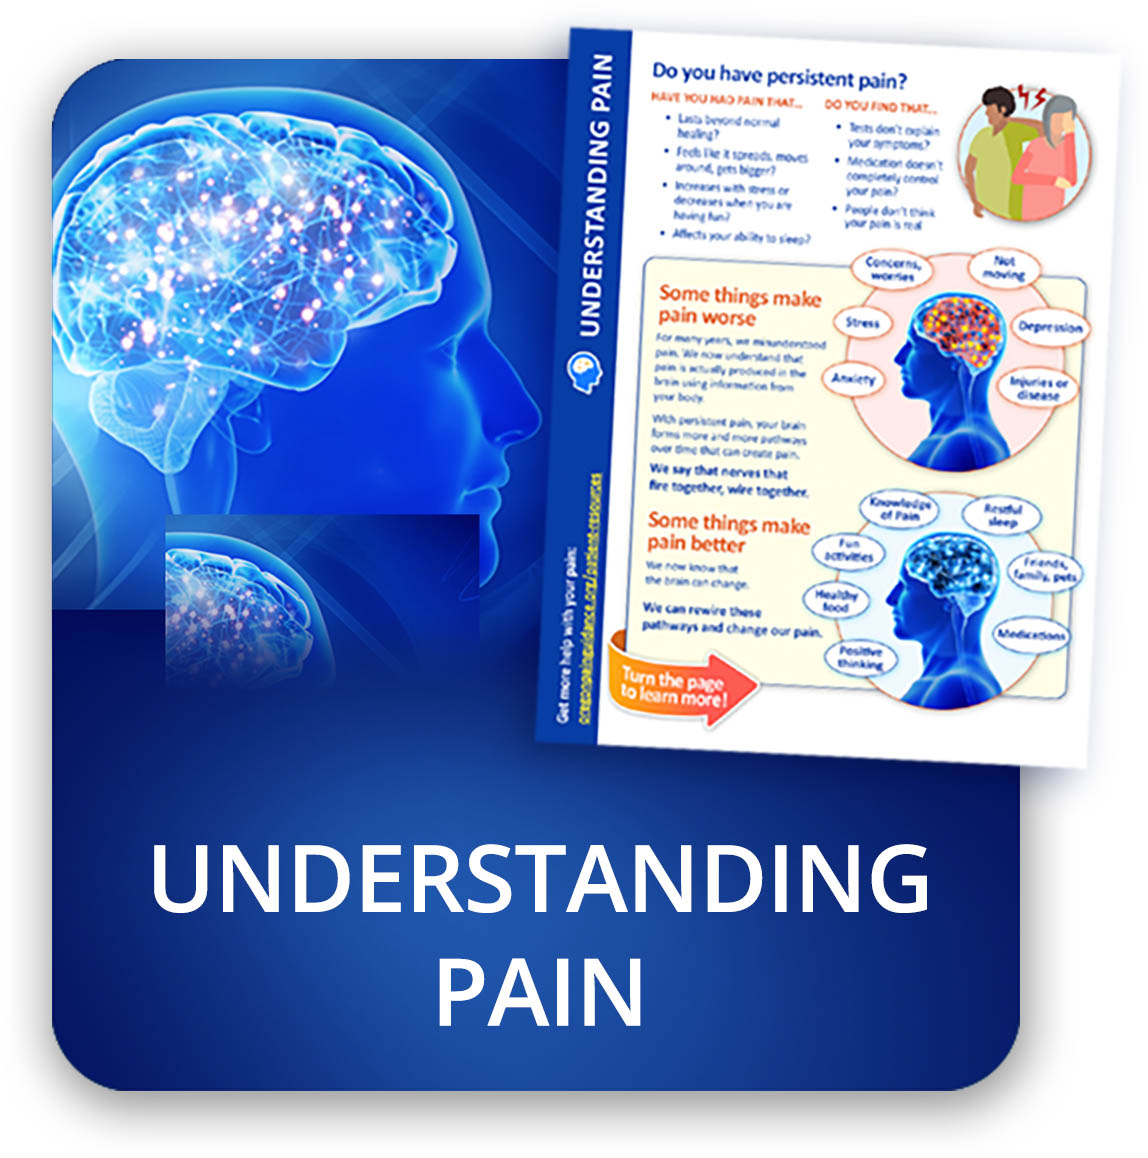 Understand what pain is and how to ease pain